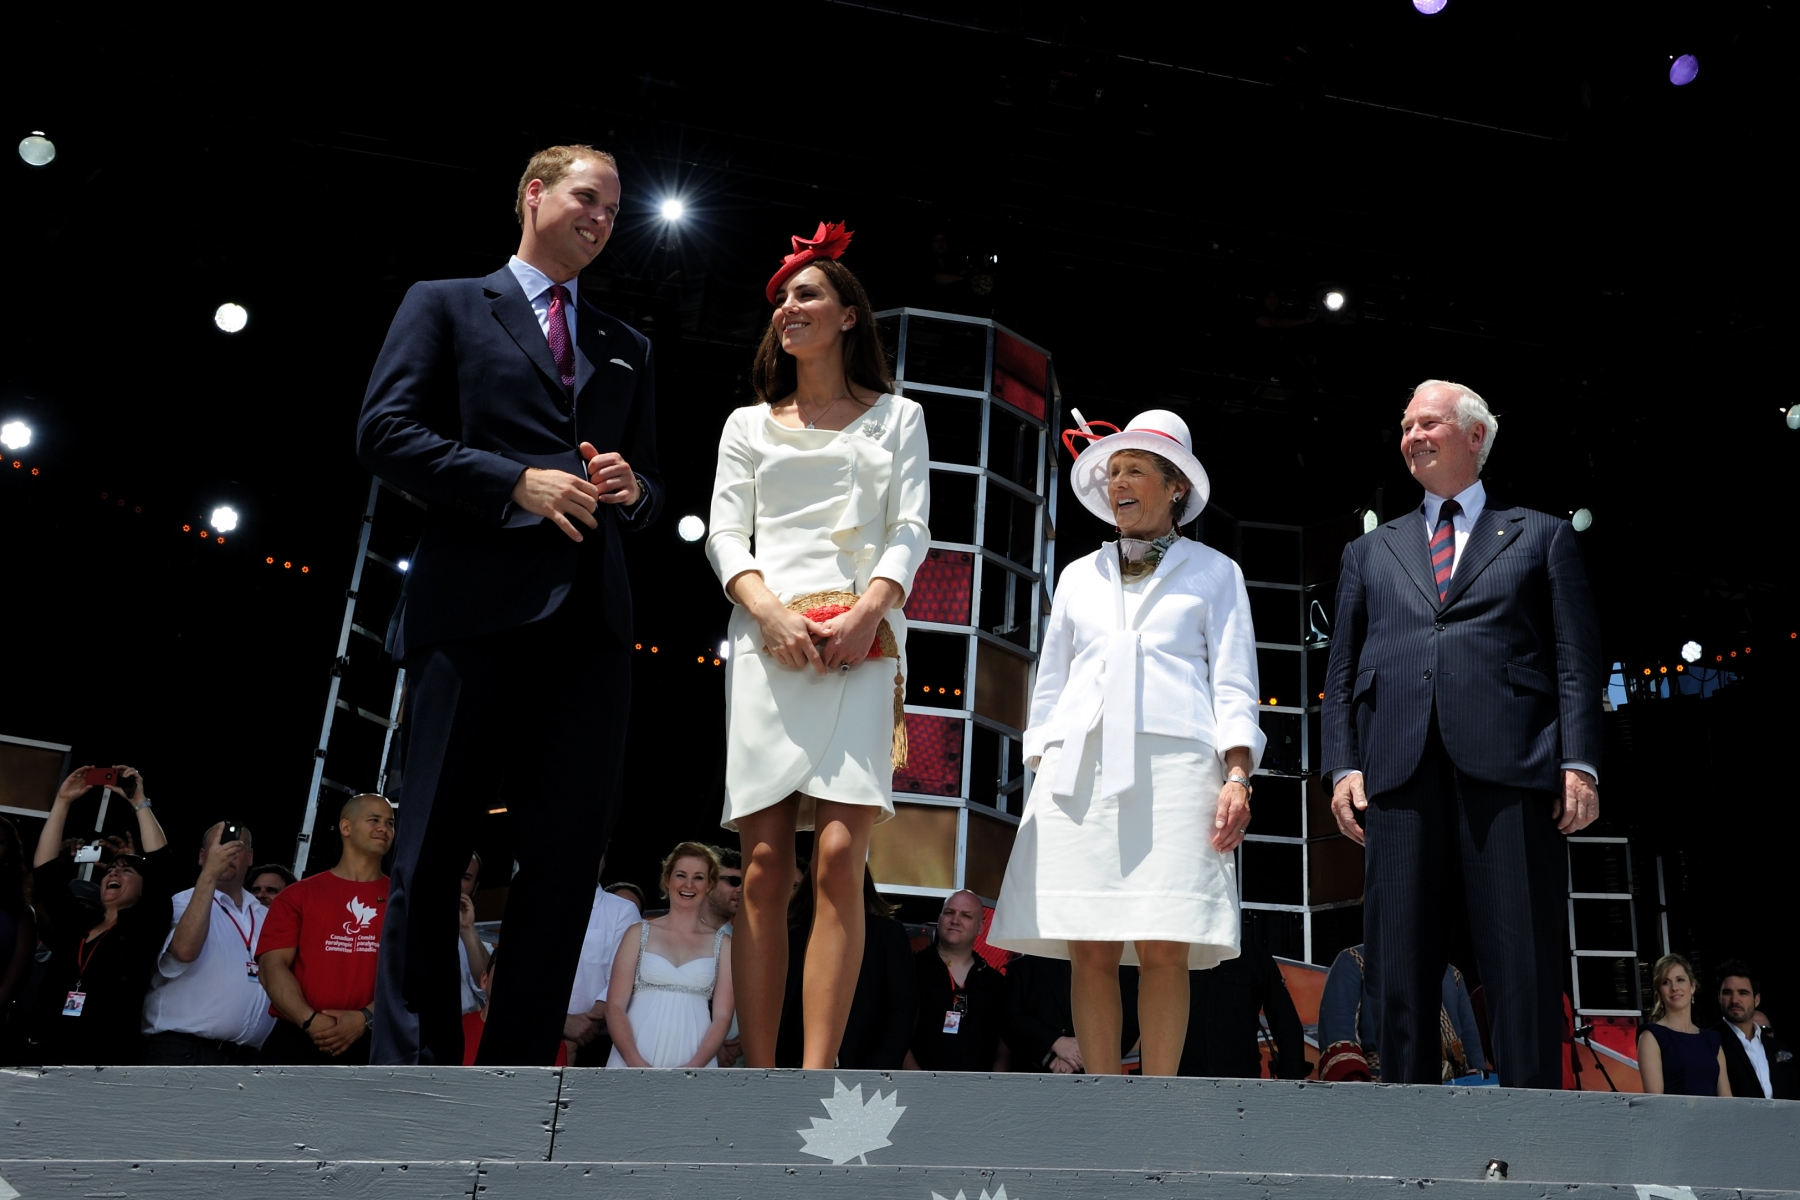 Along with thousands of Canadians and visitors, Their Excellencies were joined by Their Royal Highnesses to attend the Canada Day Noon Show.